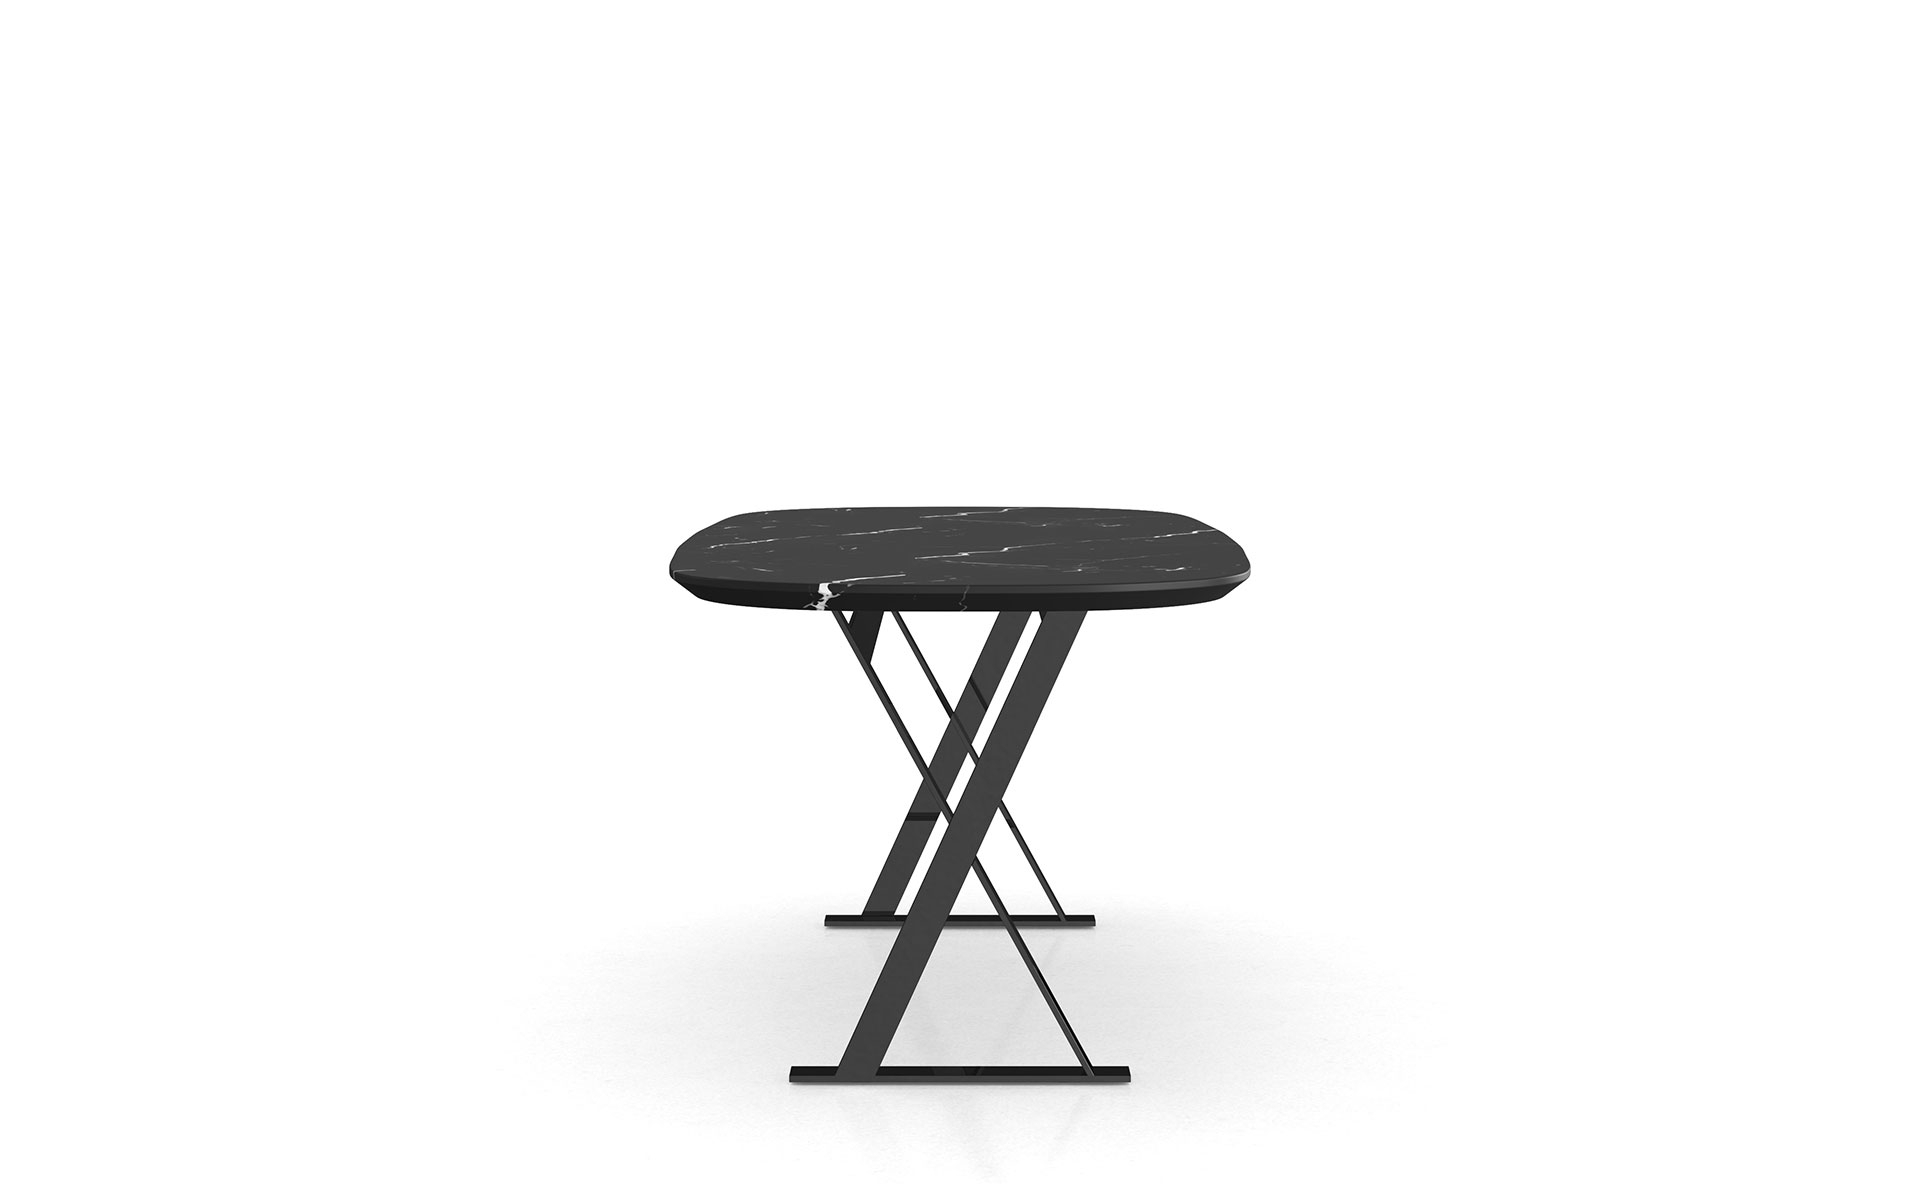 Fashionable Modloft Irving Dining Table For Long Dining Tables With Polished Black Stainless Steel Base (View 20 of 25)